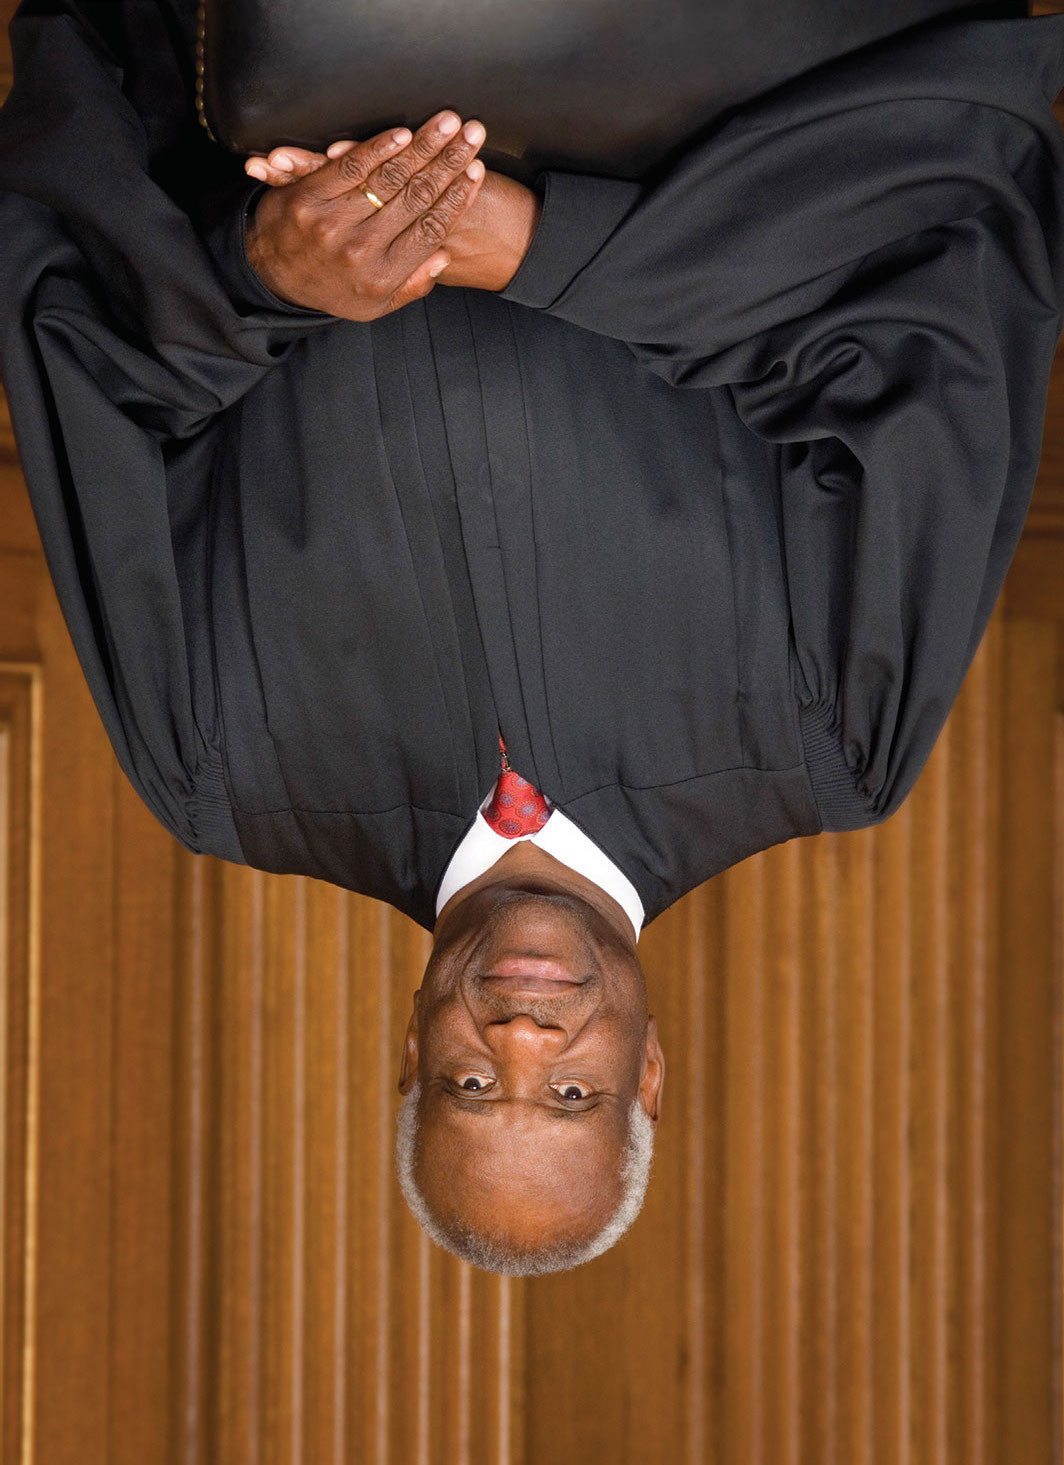 Clarence Thomas, 2007. Steve Petteway/Collection of the Supreme Court of the United States